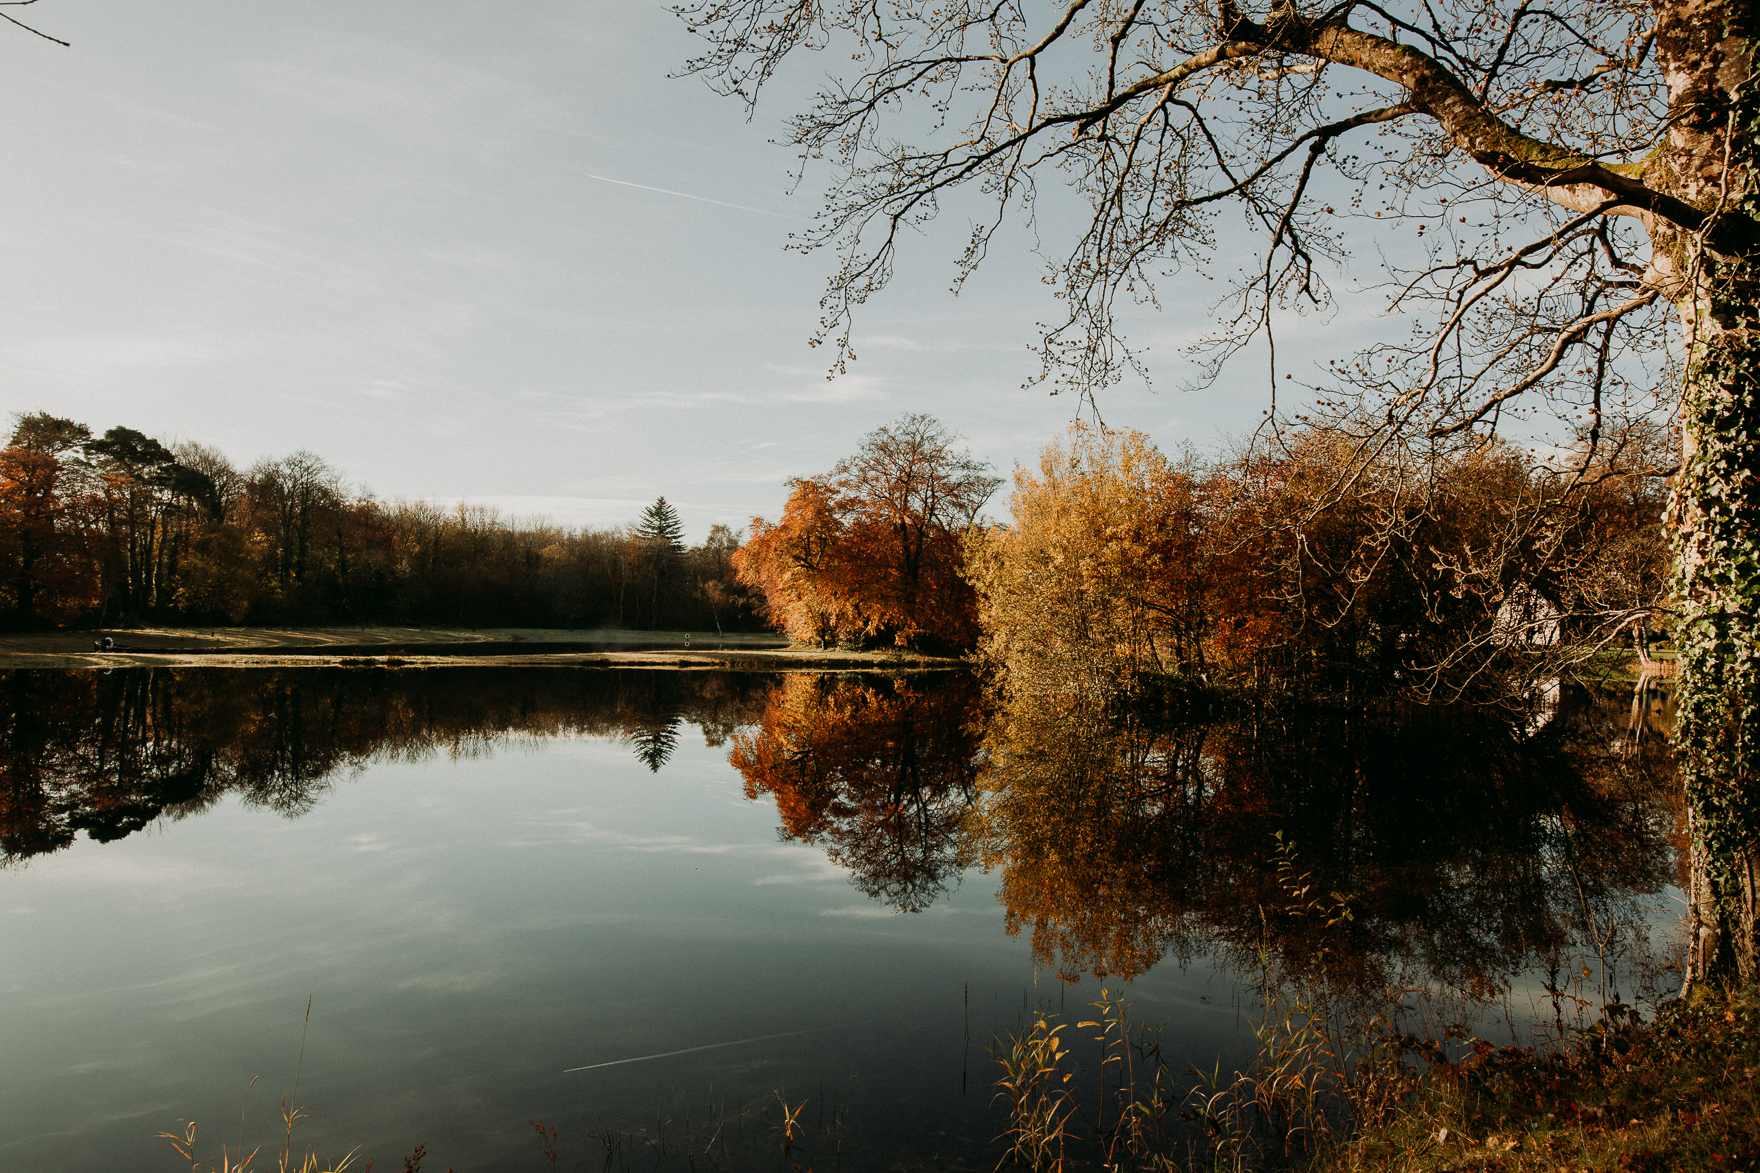 A large body of water surrounded by trees